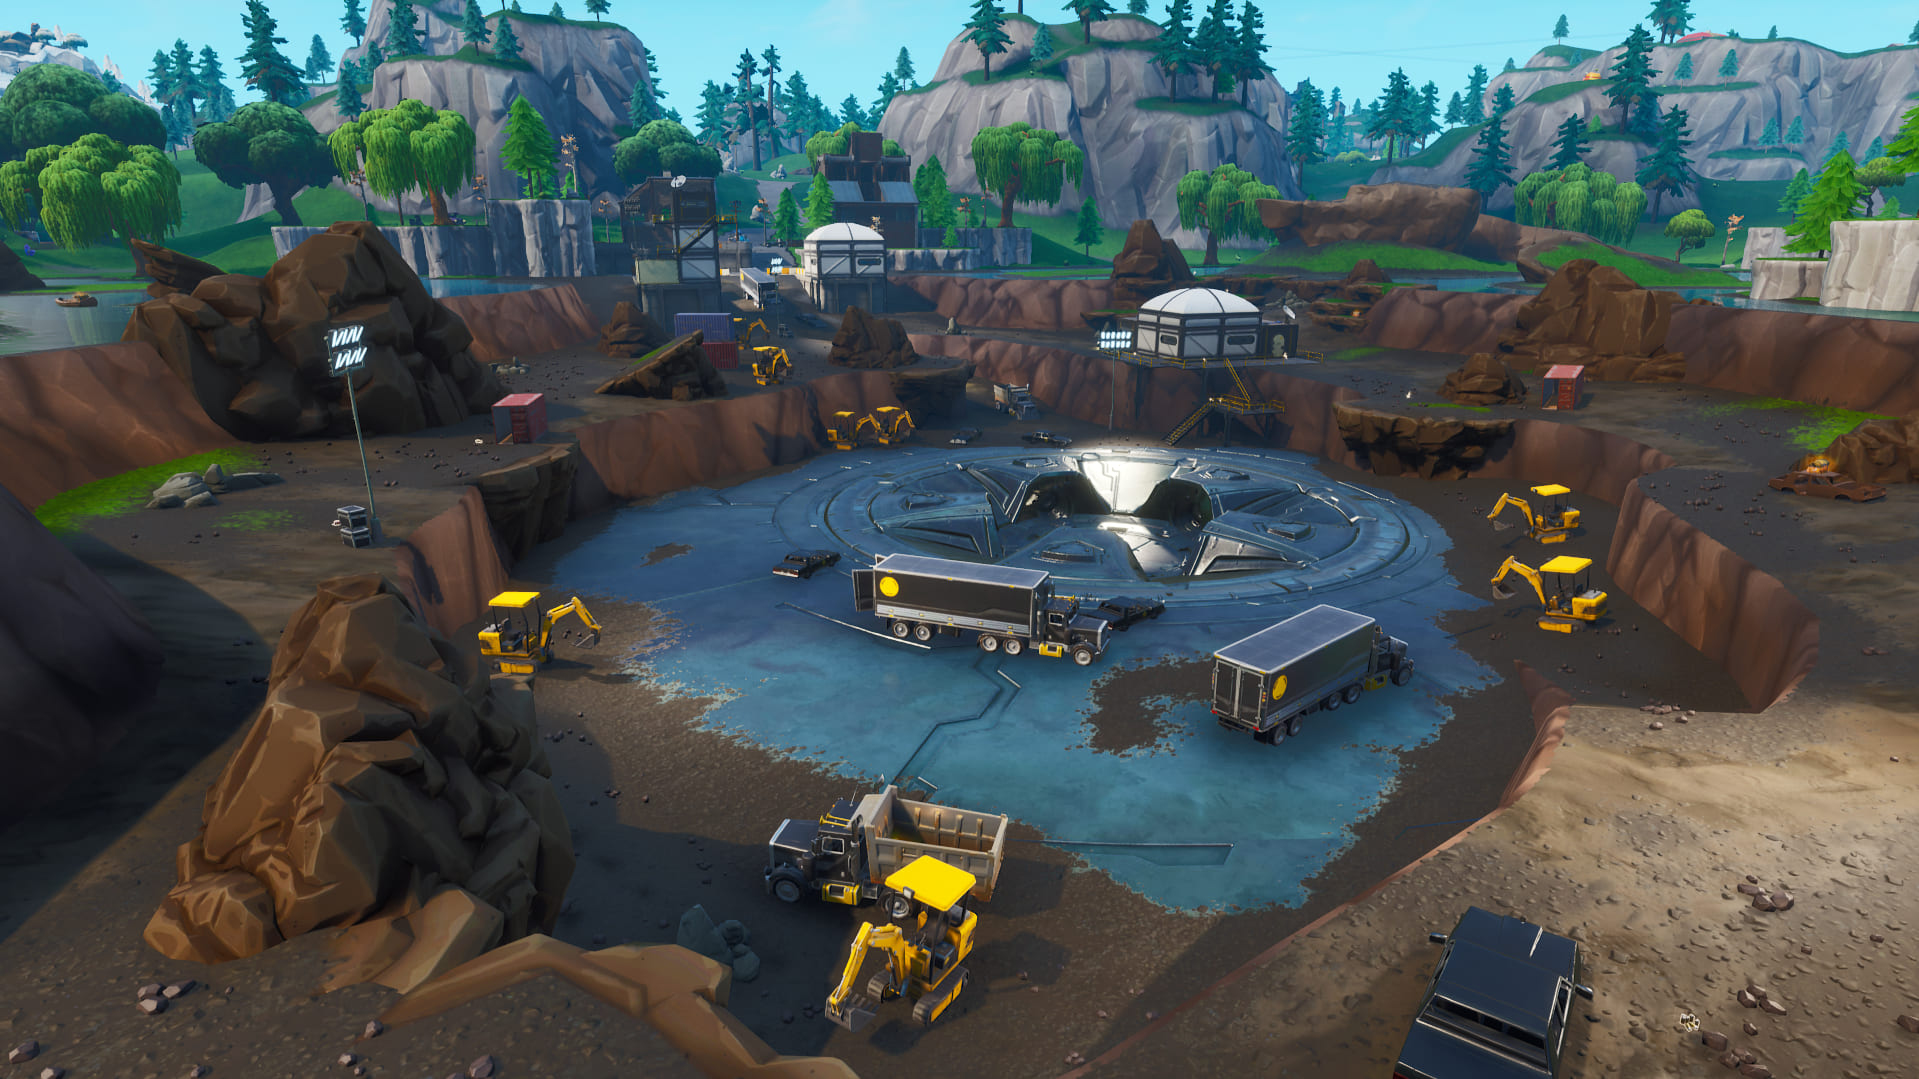 loot lake excavation site v8 40 update - fortnite update 840 map changes